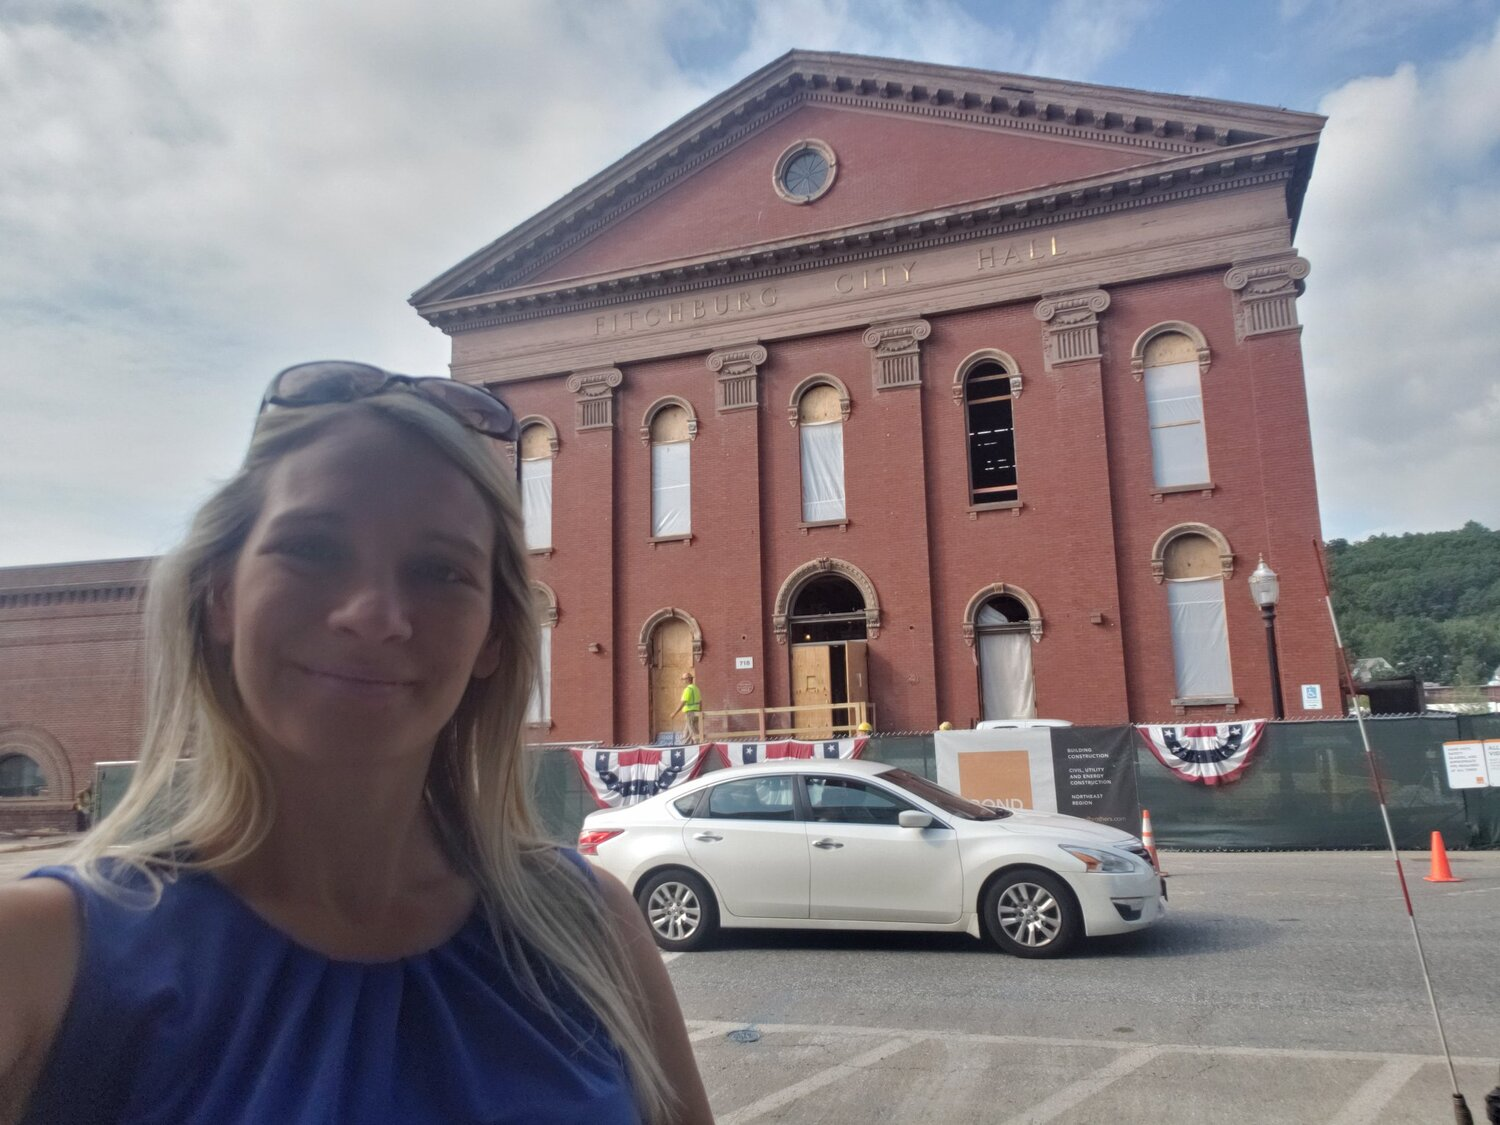 This  #CityHallSelfie  is @FitchburgMass 4th Meeting House and Official City Hall built in 1853 at 718 Main St; abandoned in 2012 due to structural roof failure from longtime roof leaks. $23.5M was appropriated in 2018 to rehab & we expect to reopen late 2020. @ELGL50